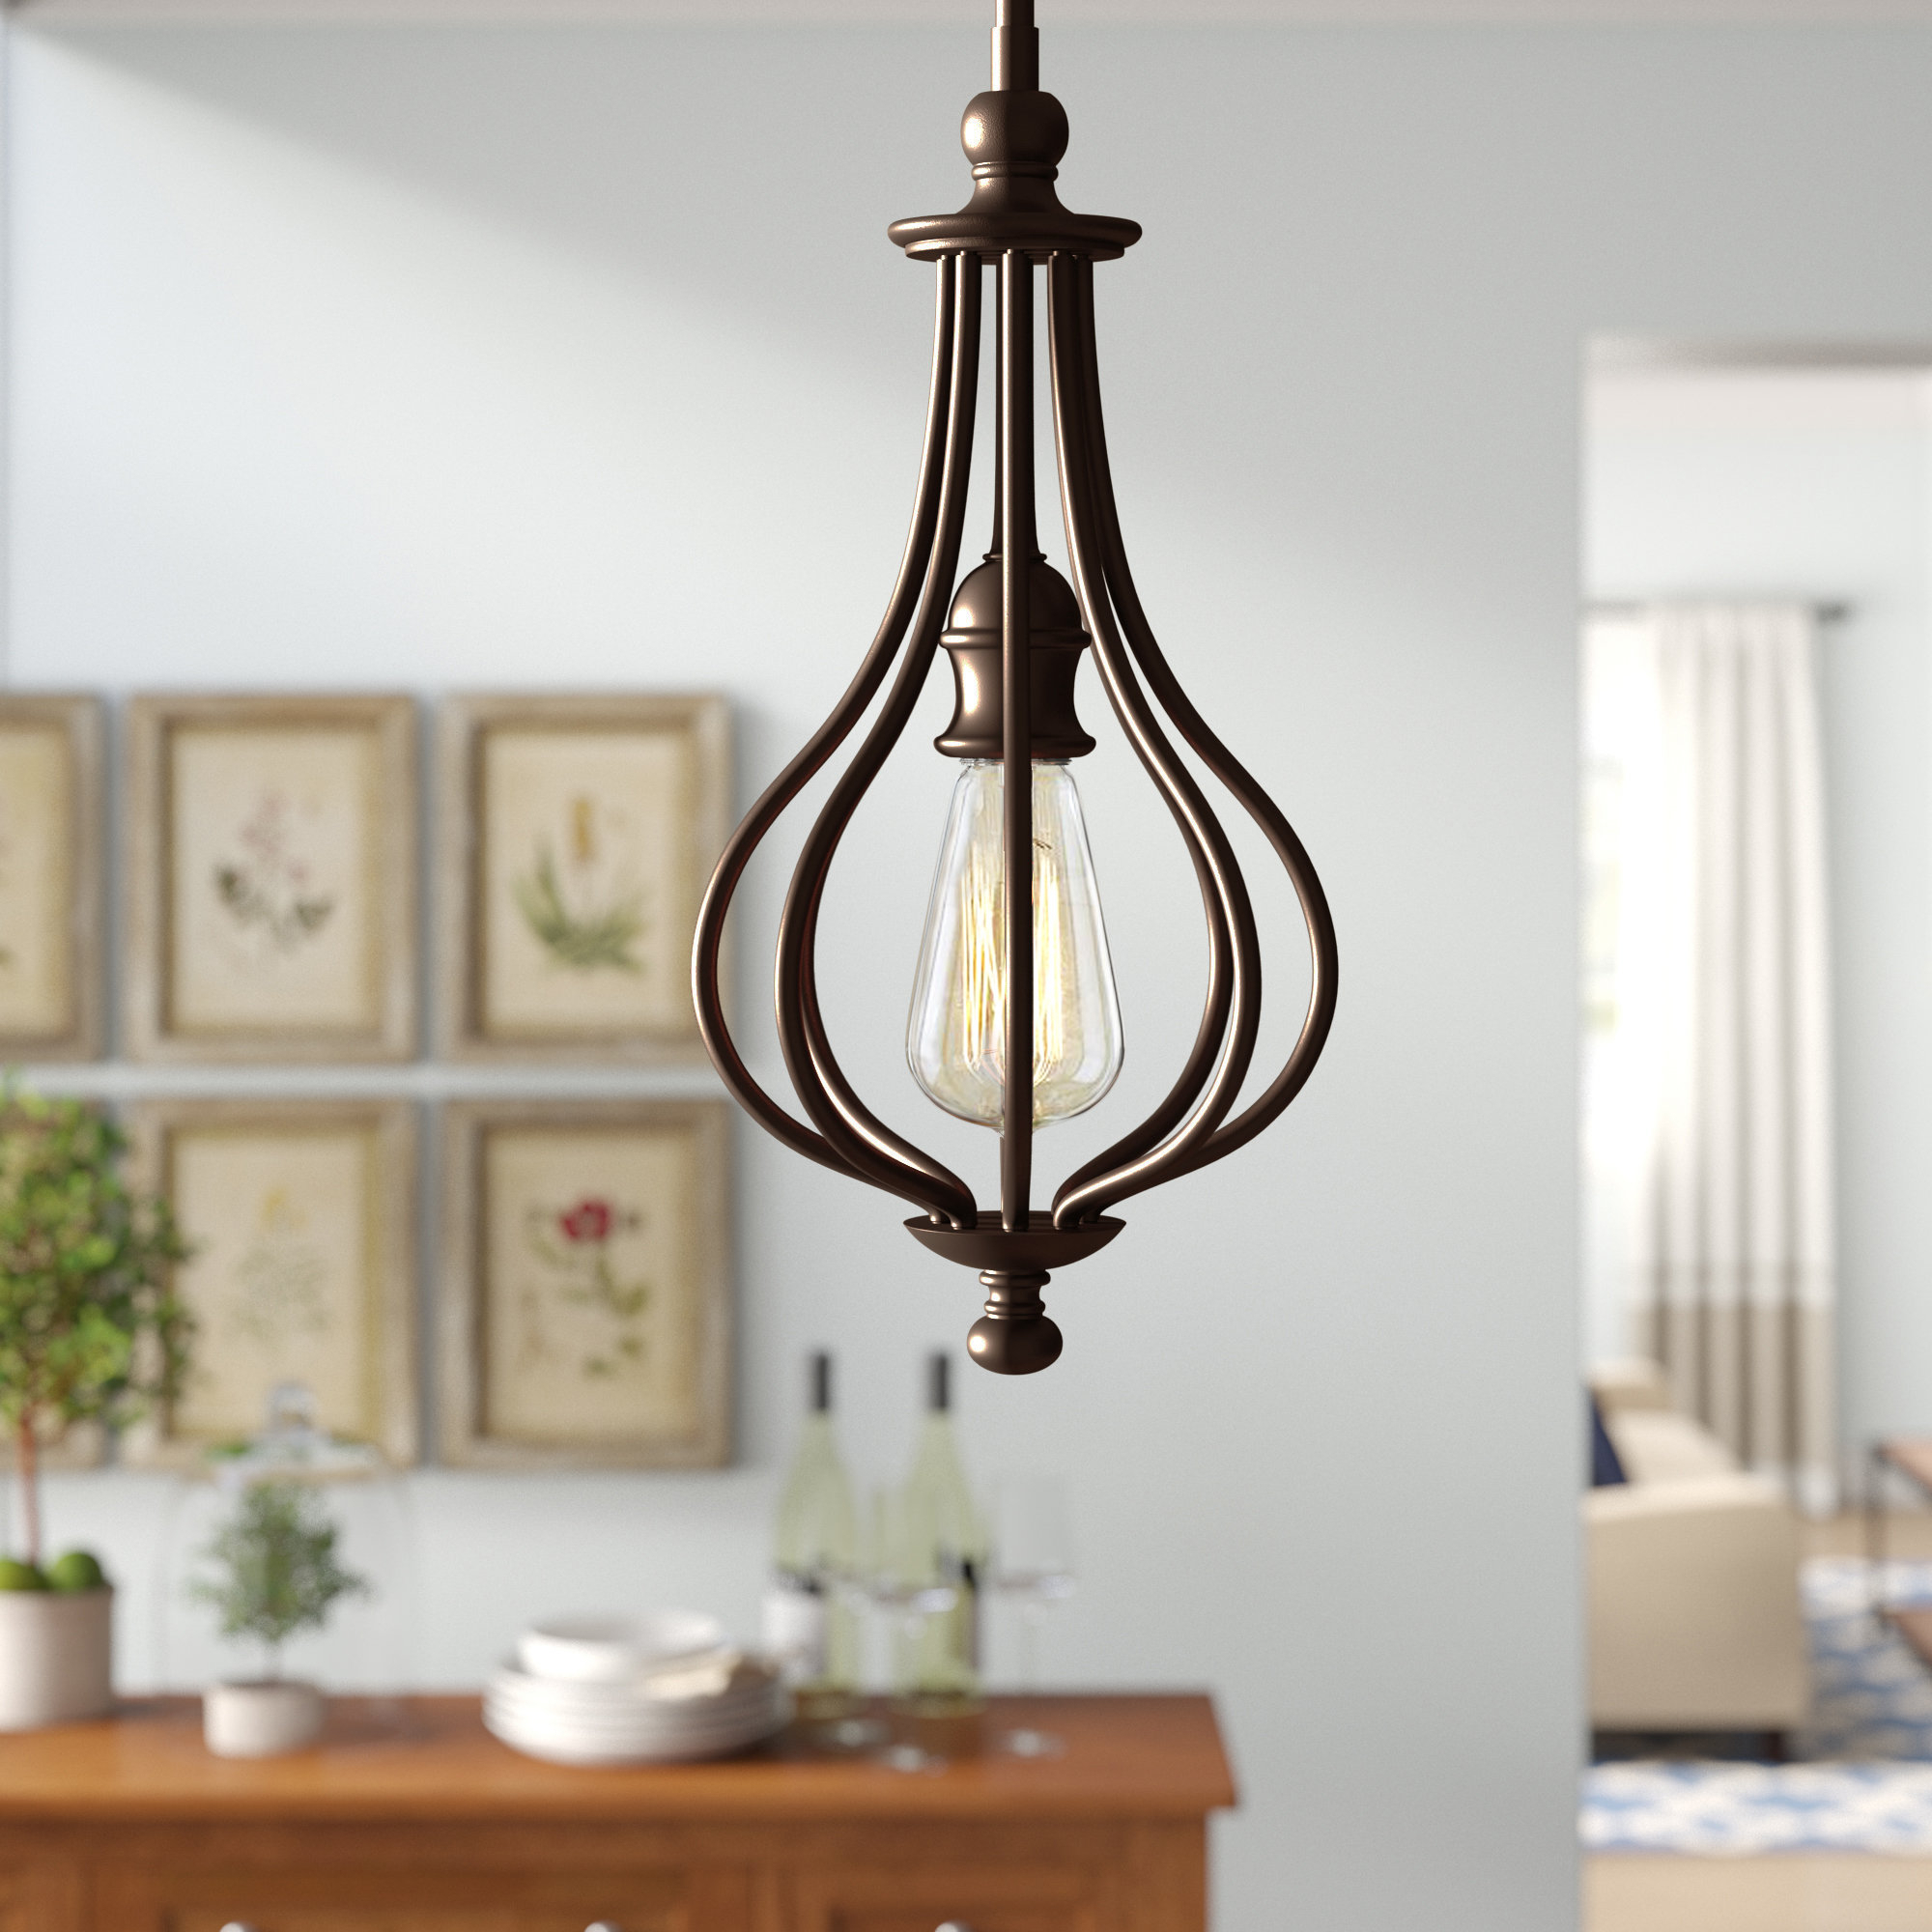 Favorite Birch Lane 1 Light Single Teardrop Pendant & Reviews With Van Horne 3 Light Single Teardrop Pendants (View 6 of 25)